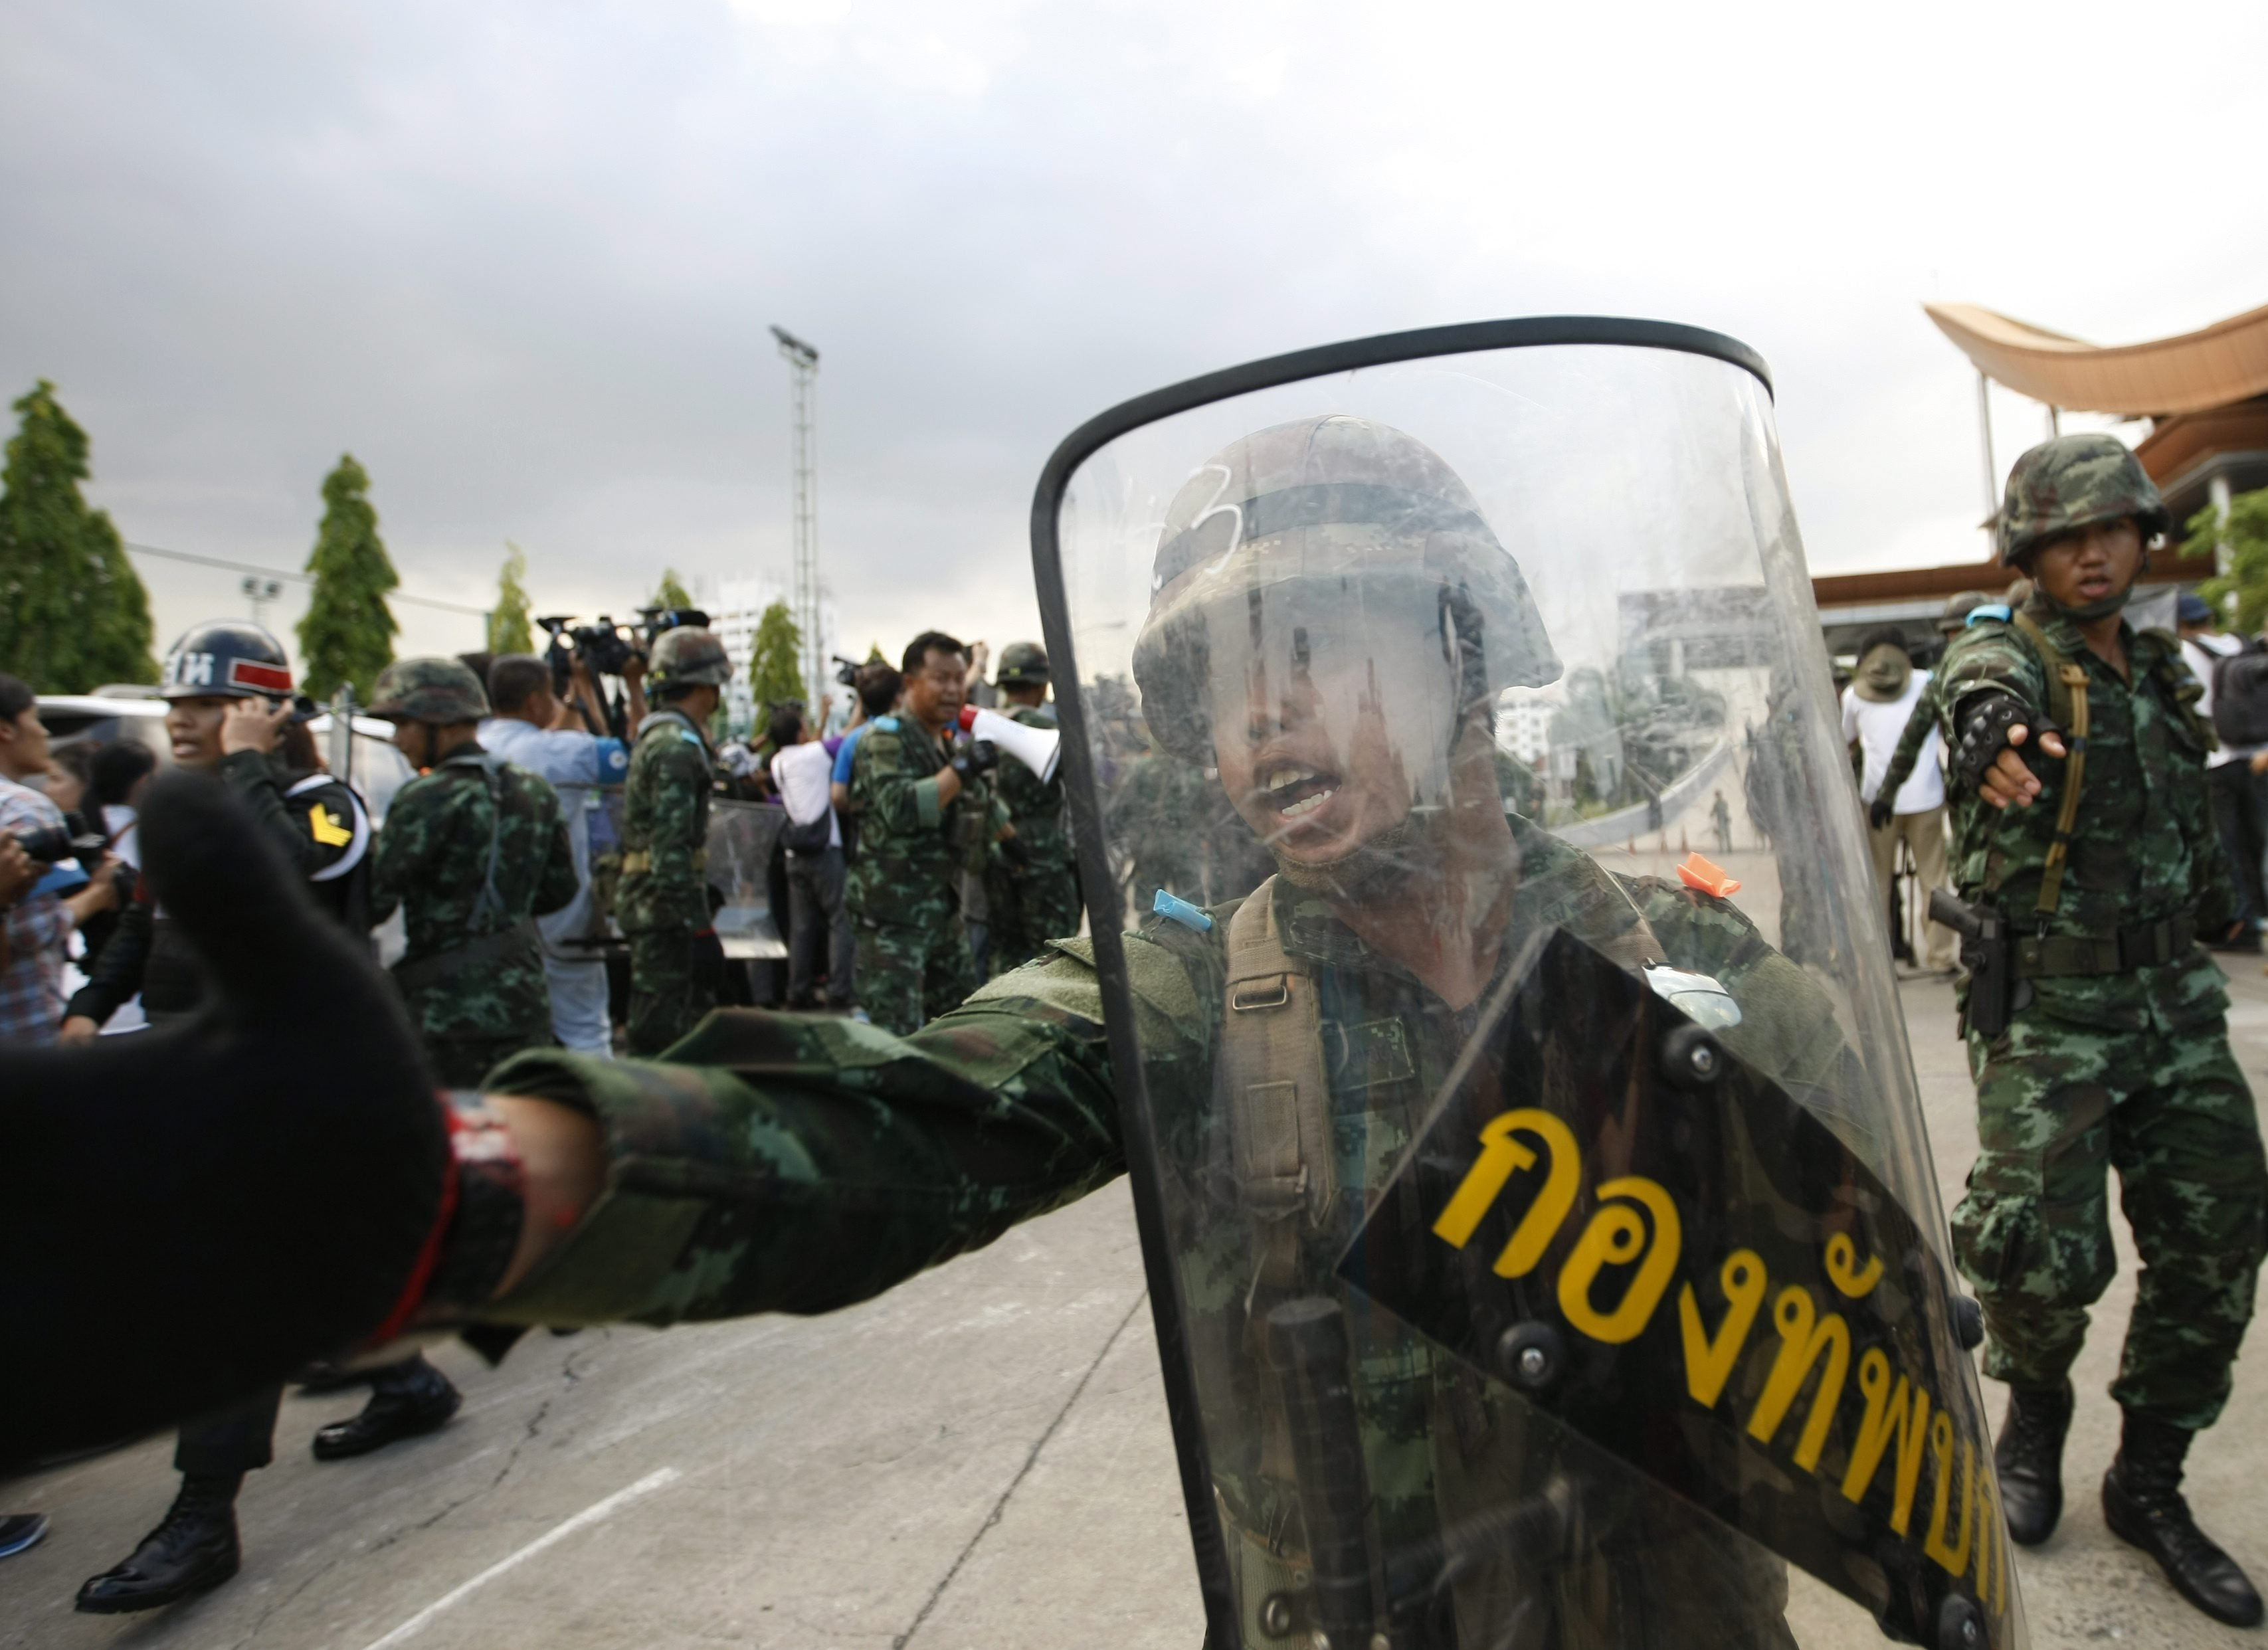 Thai armed soldiers stand guard after they used a military truck to block the entrance of the Army Club following a military coup in Bangkok on May 22, 2014.